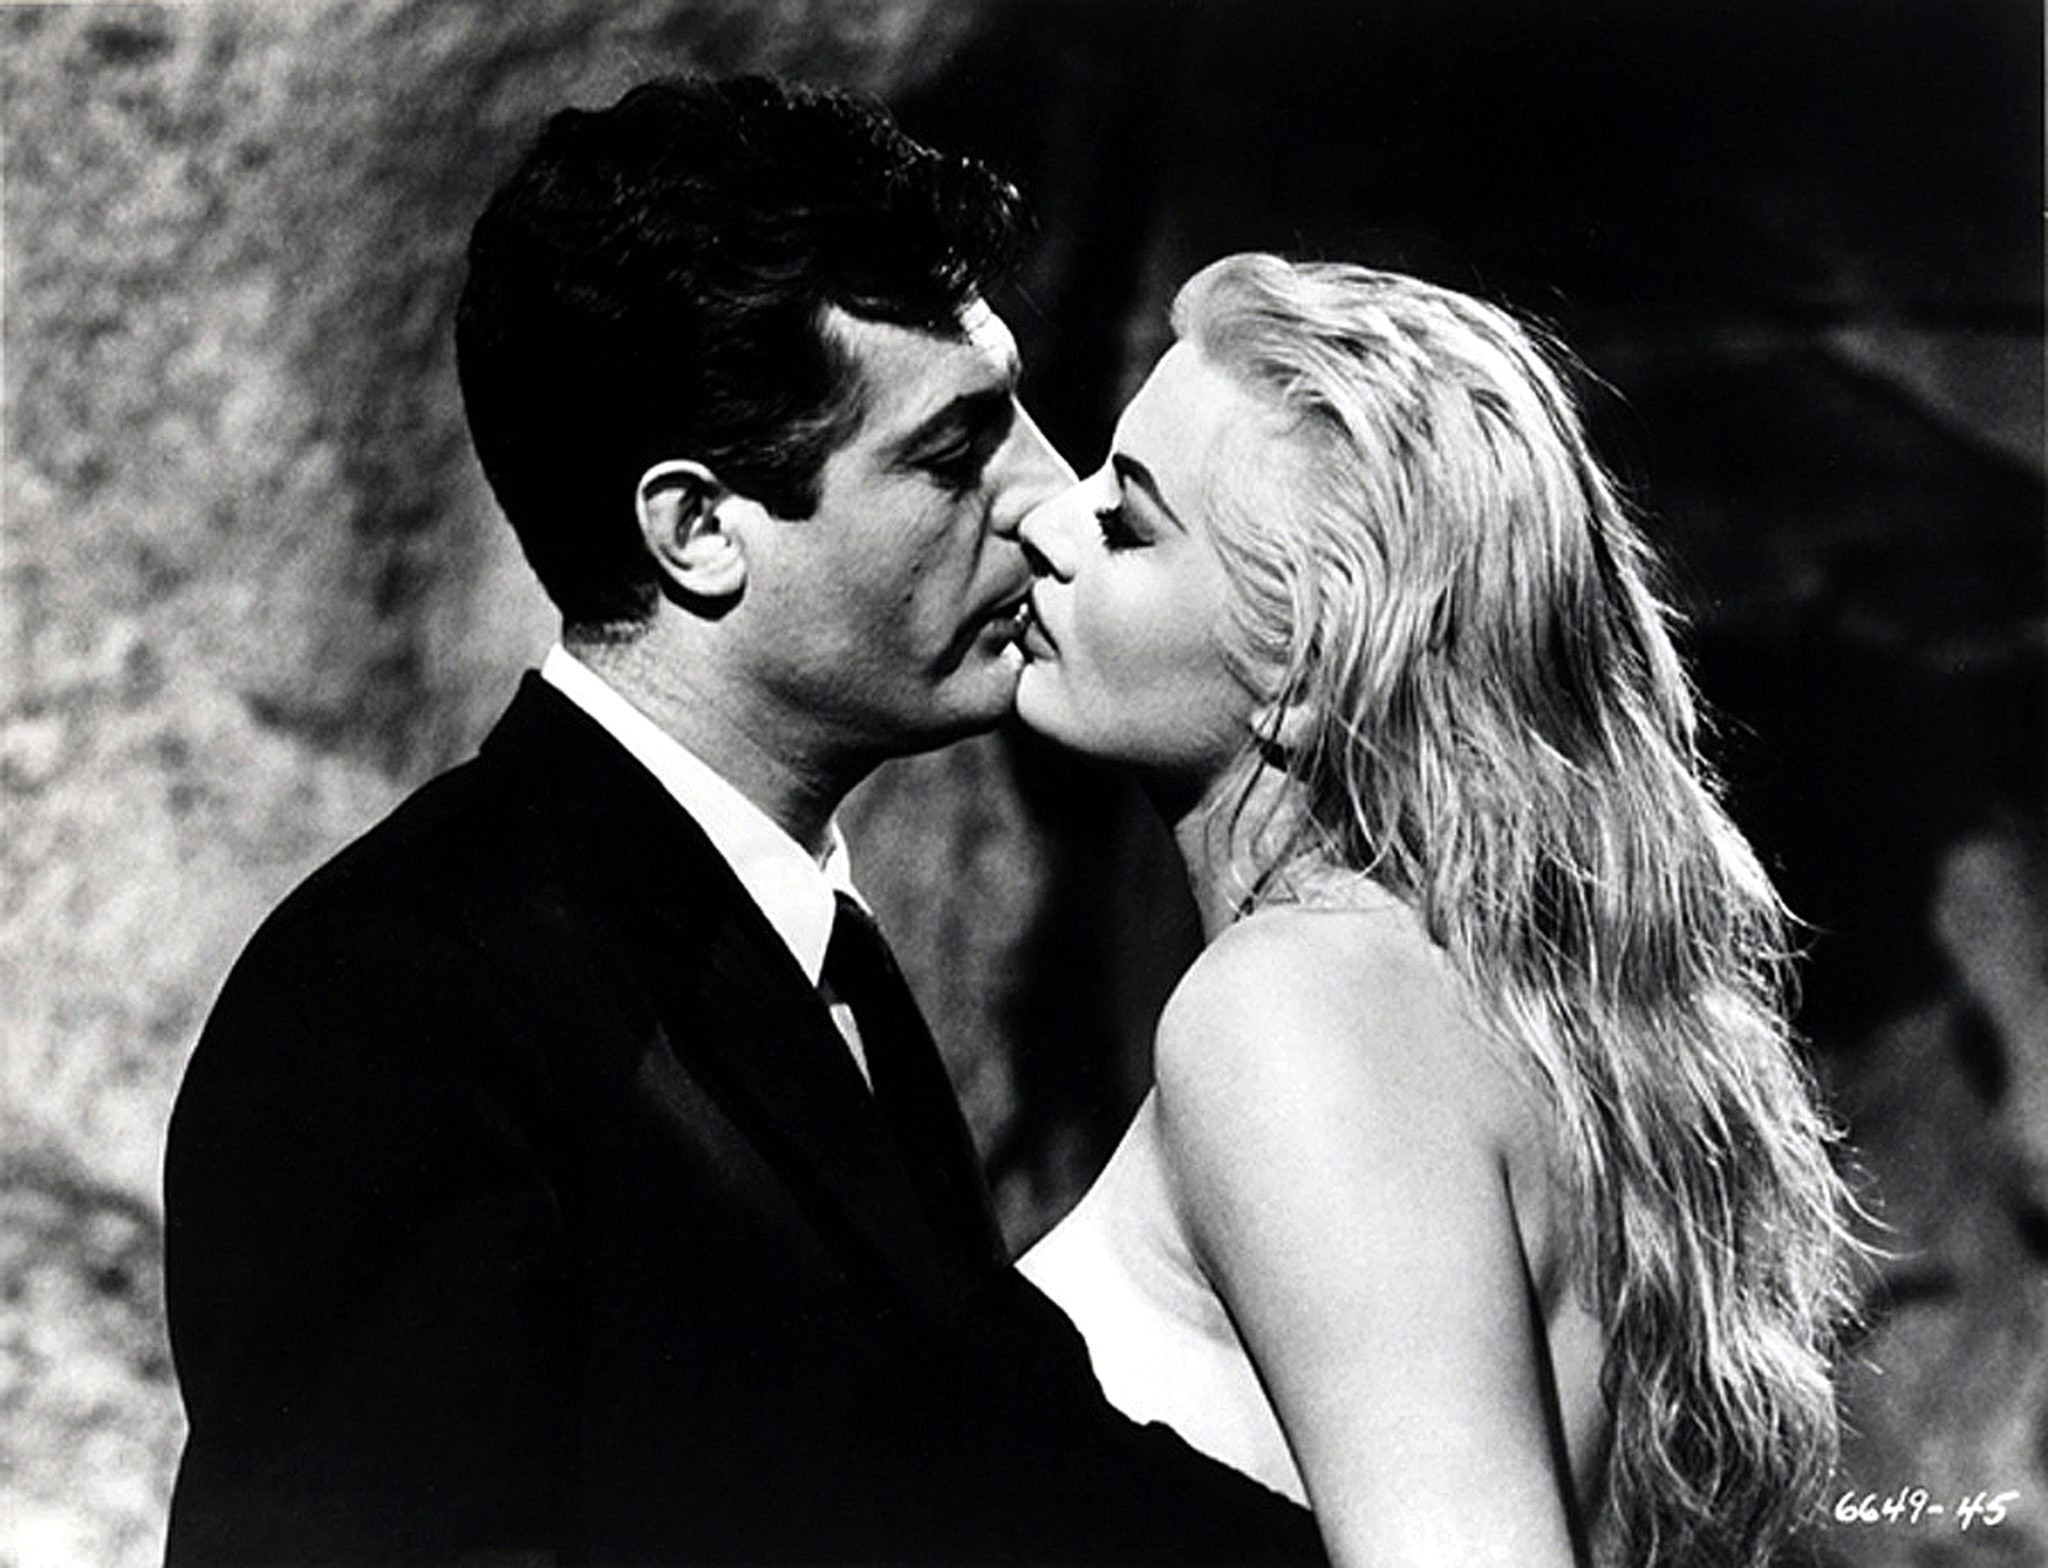 Federico Felliniu0027s 1960 film La Dolce Vita showing Marcello Mastroianni kissing Anita Ekberg. EPA/ Blue Box Toys/ HO & Explainer: film lighting